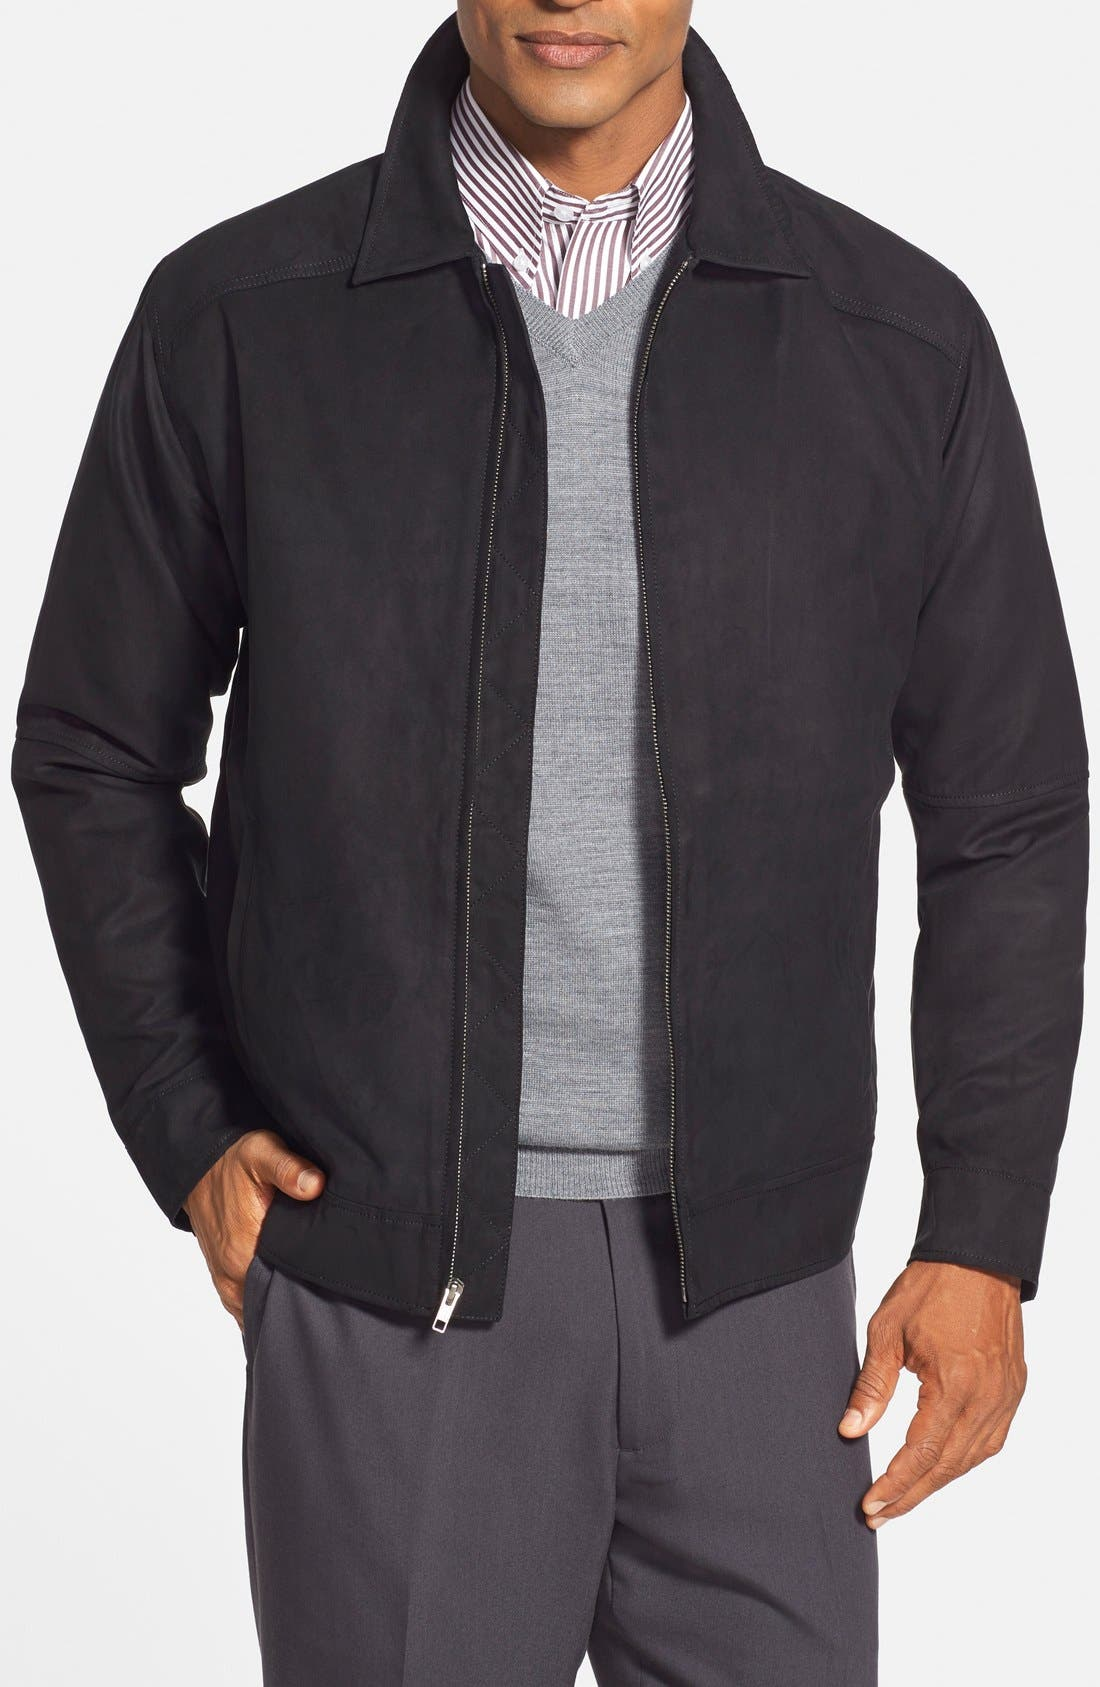 'Roosevelt' Classic Fit Water Resistant Full Zip Jacket,                             Main thumbnail 1, color,